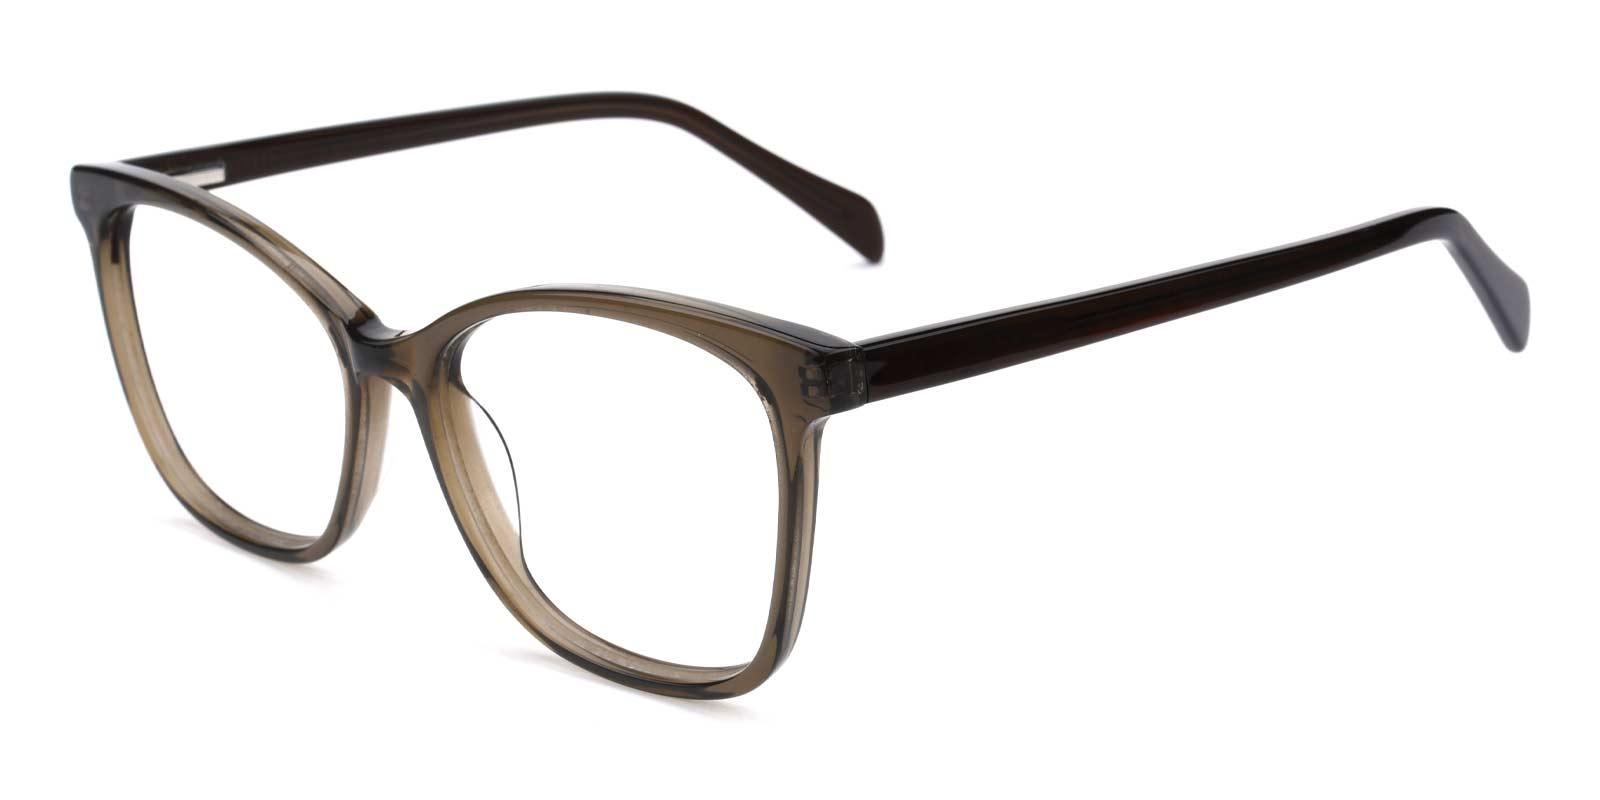 Poppy-Green-Square-Acetate-Eyeglasses-additional1